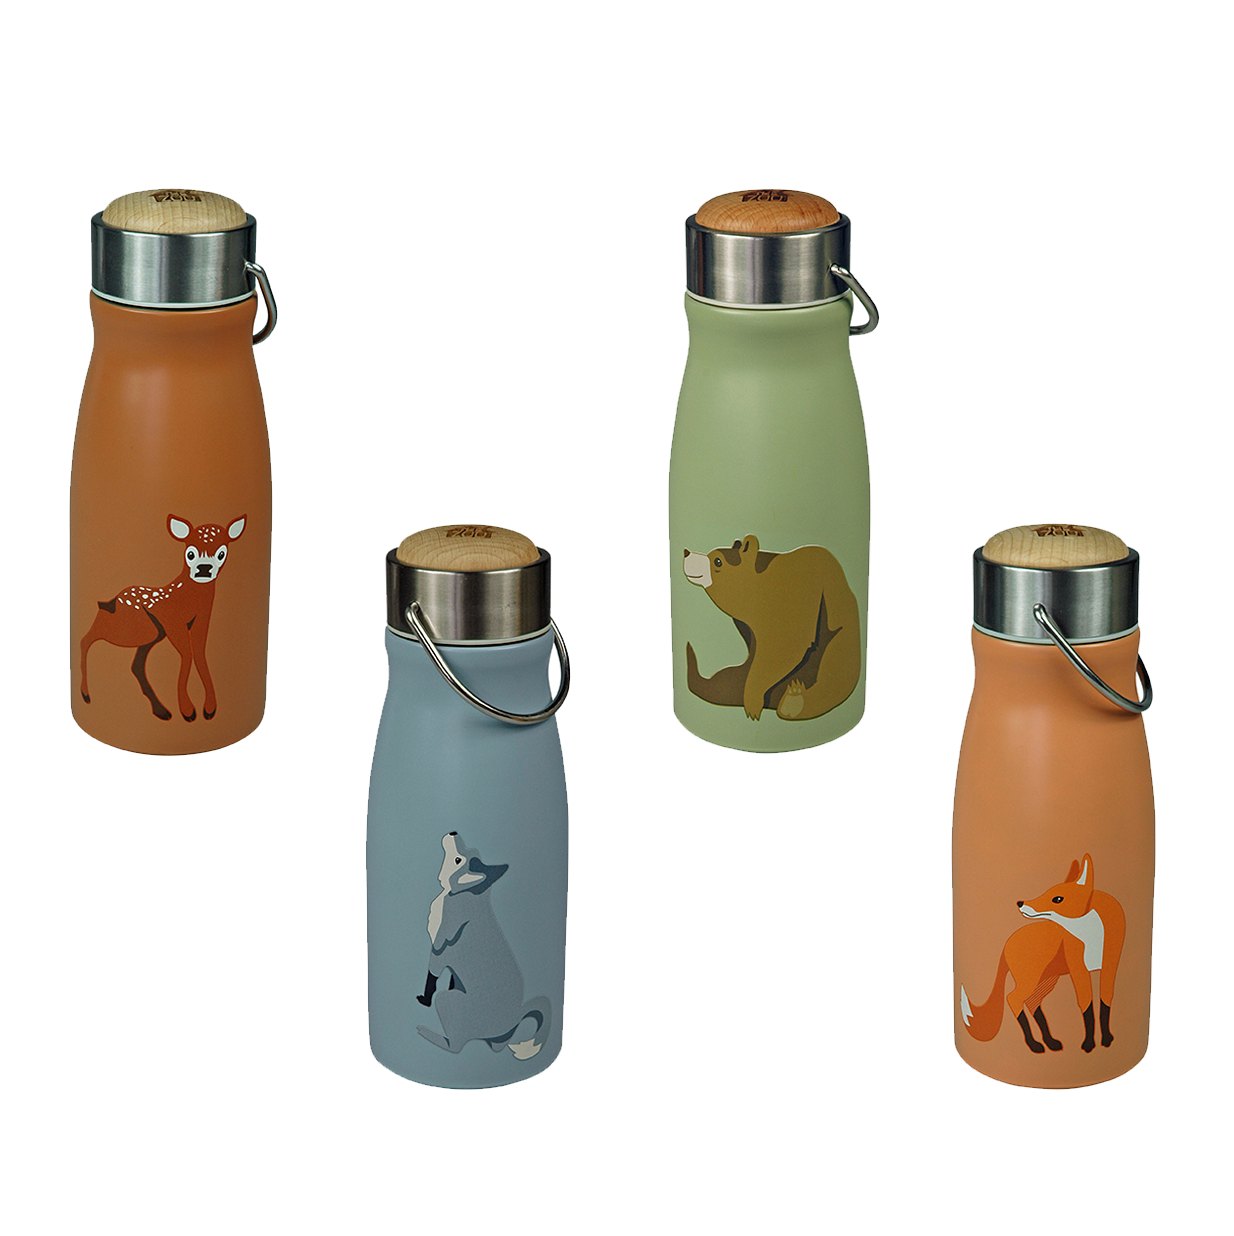 Thermoflasche aus Edelstahl – Wald, the Zoo